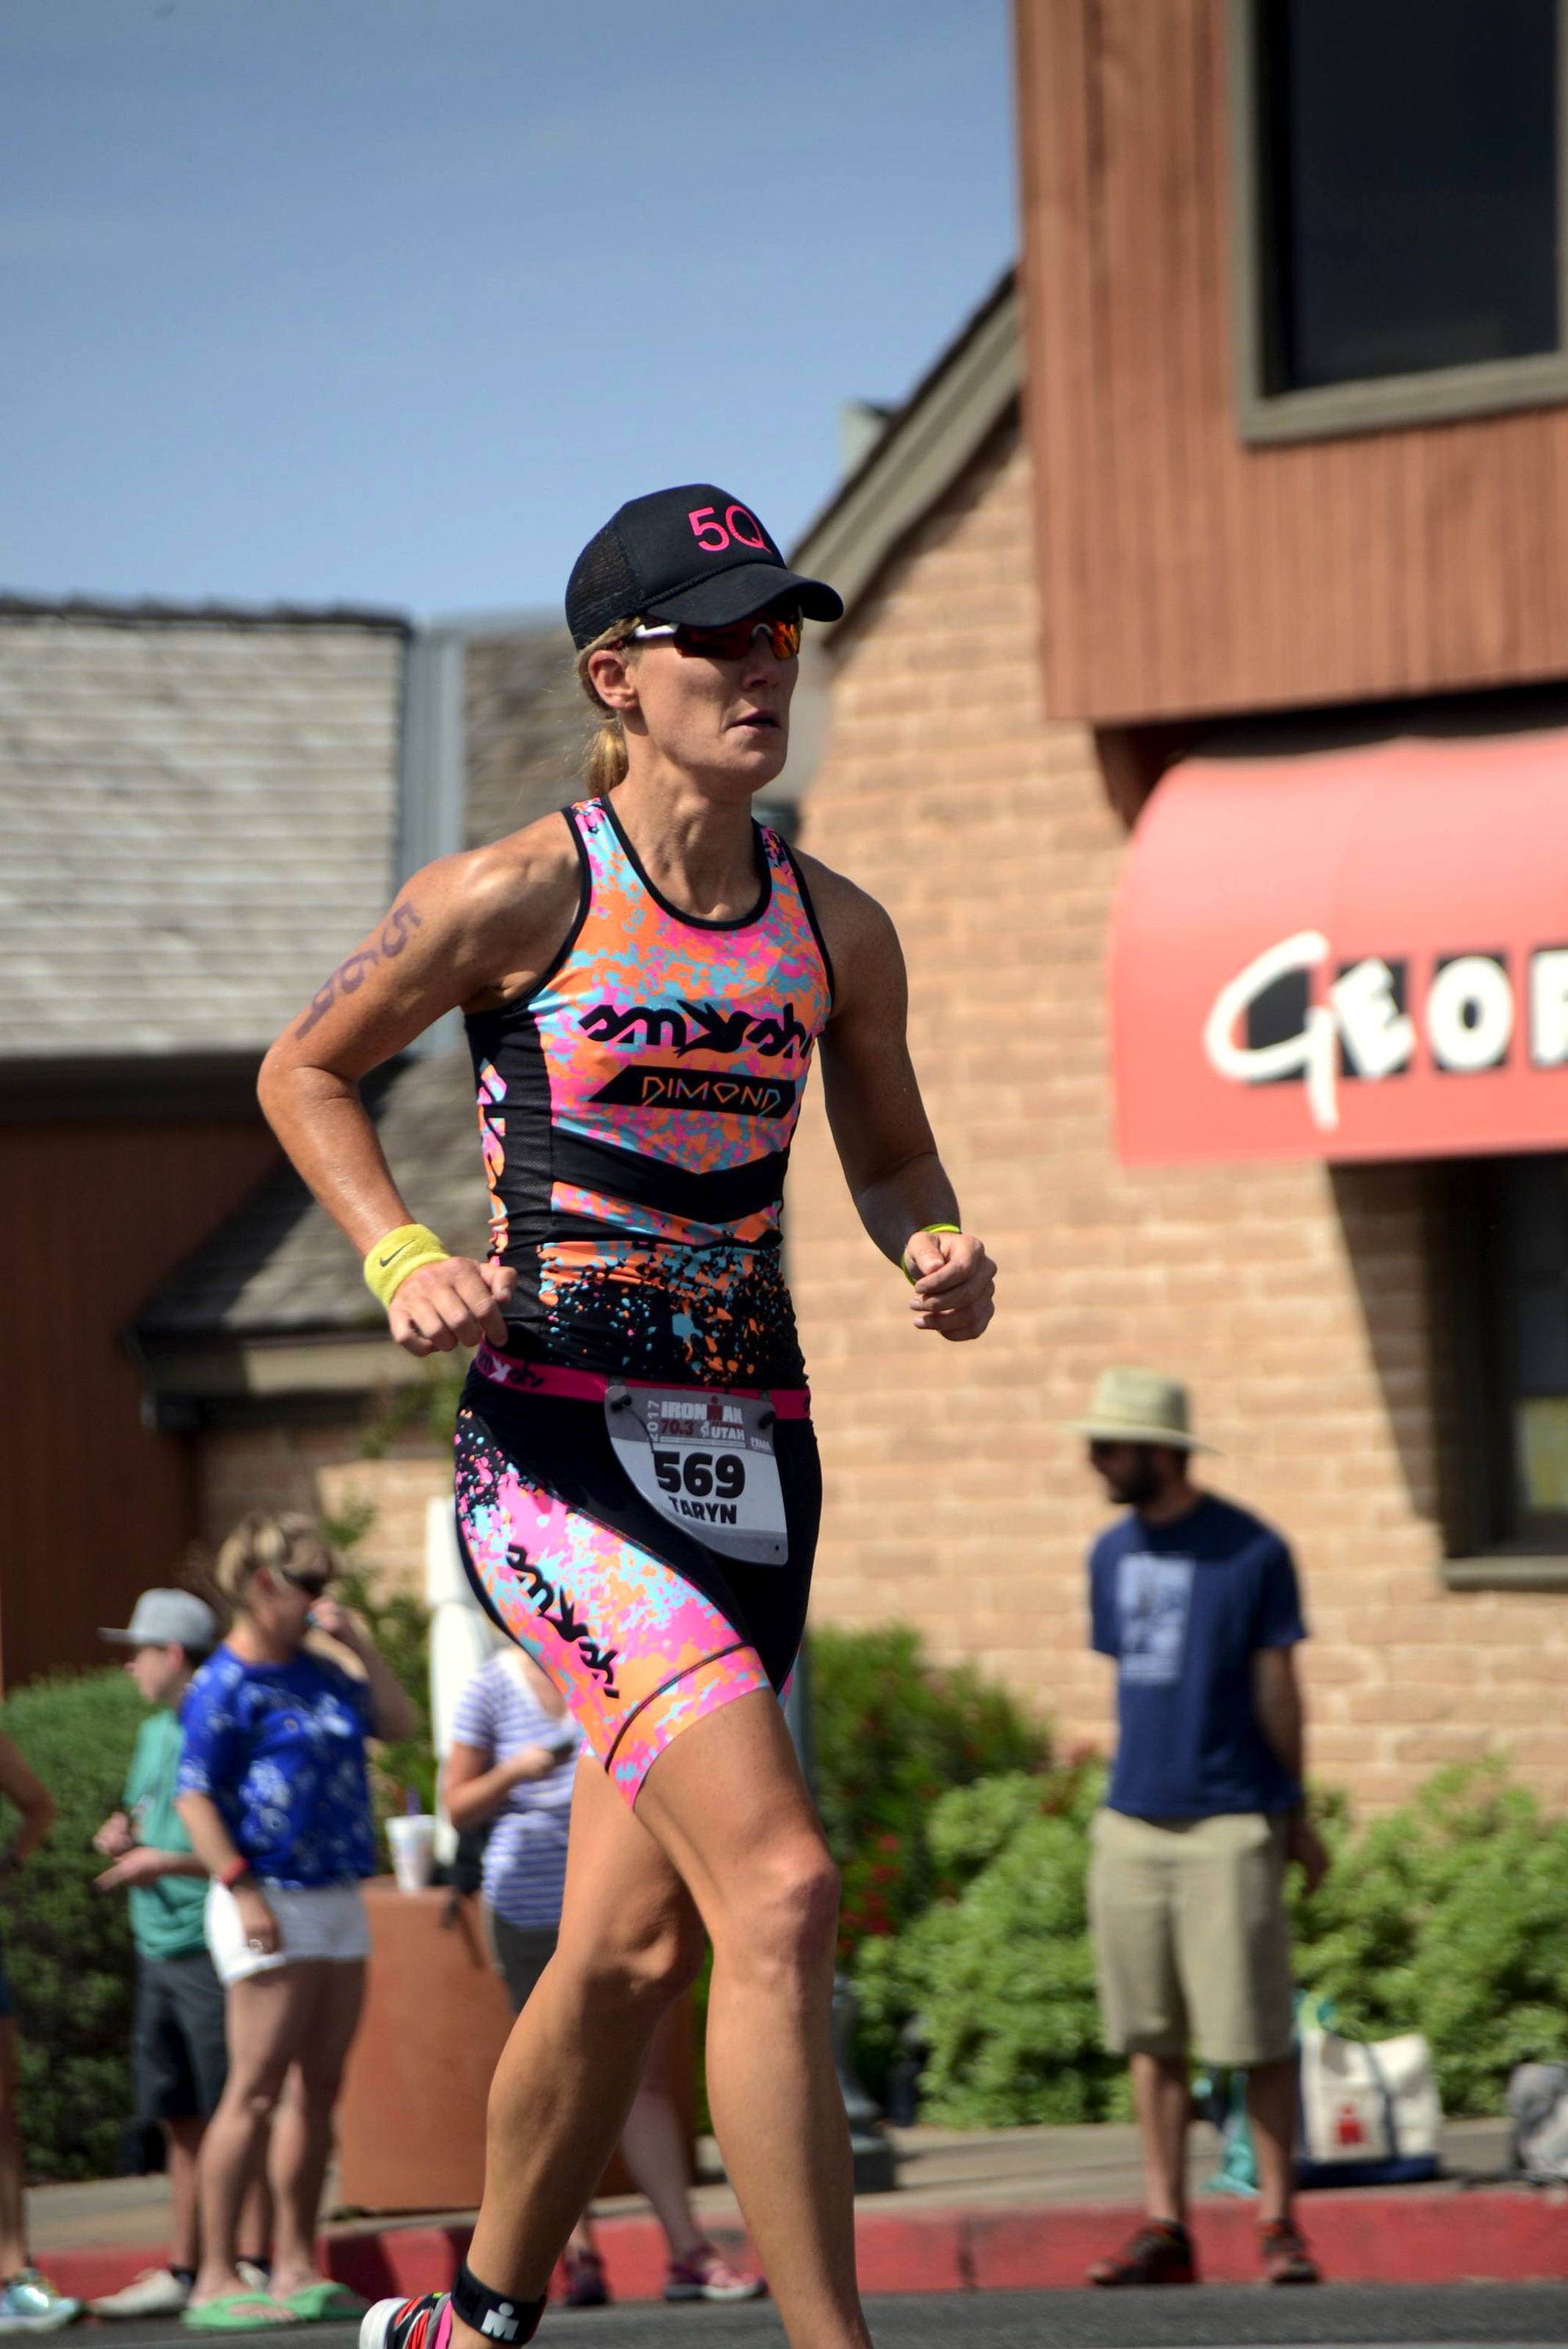 Heading out on the run course wearing the sickest kit on the course!